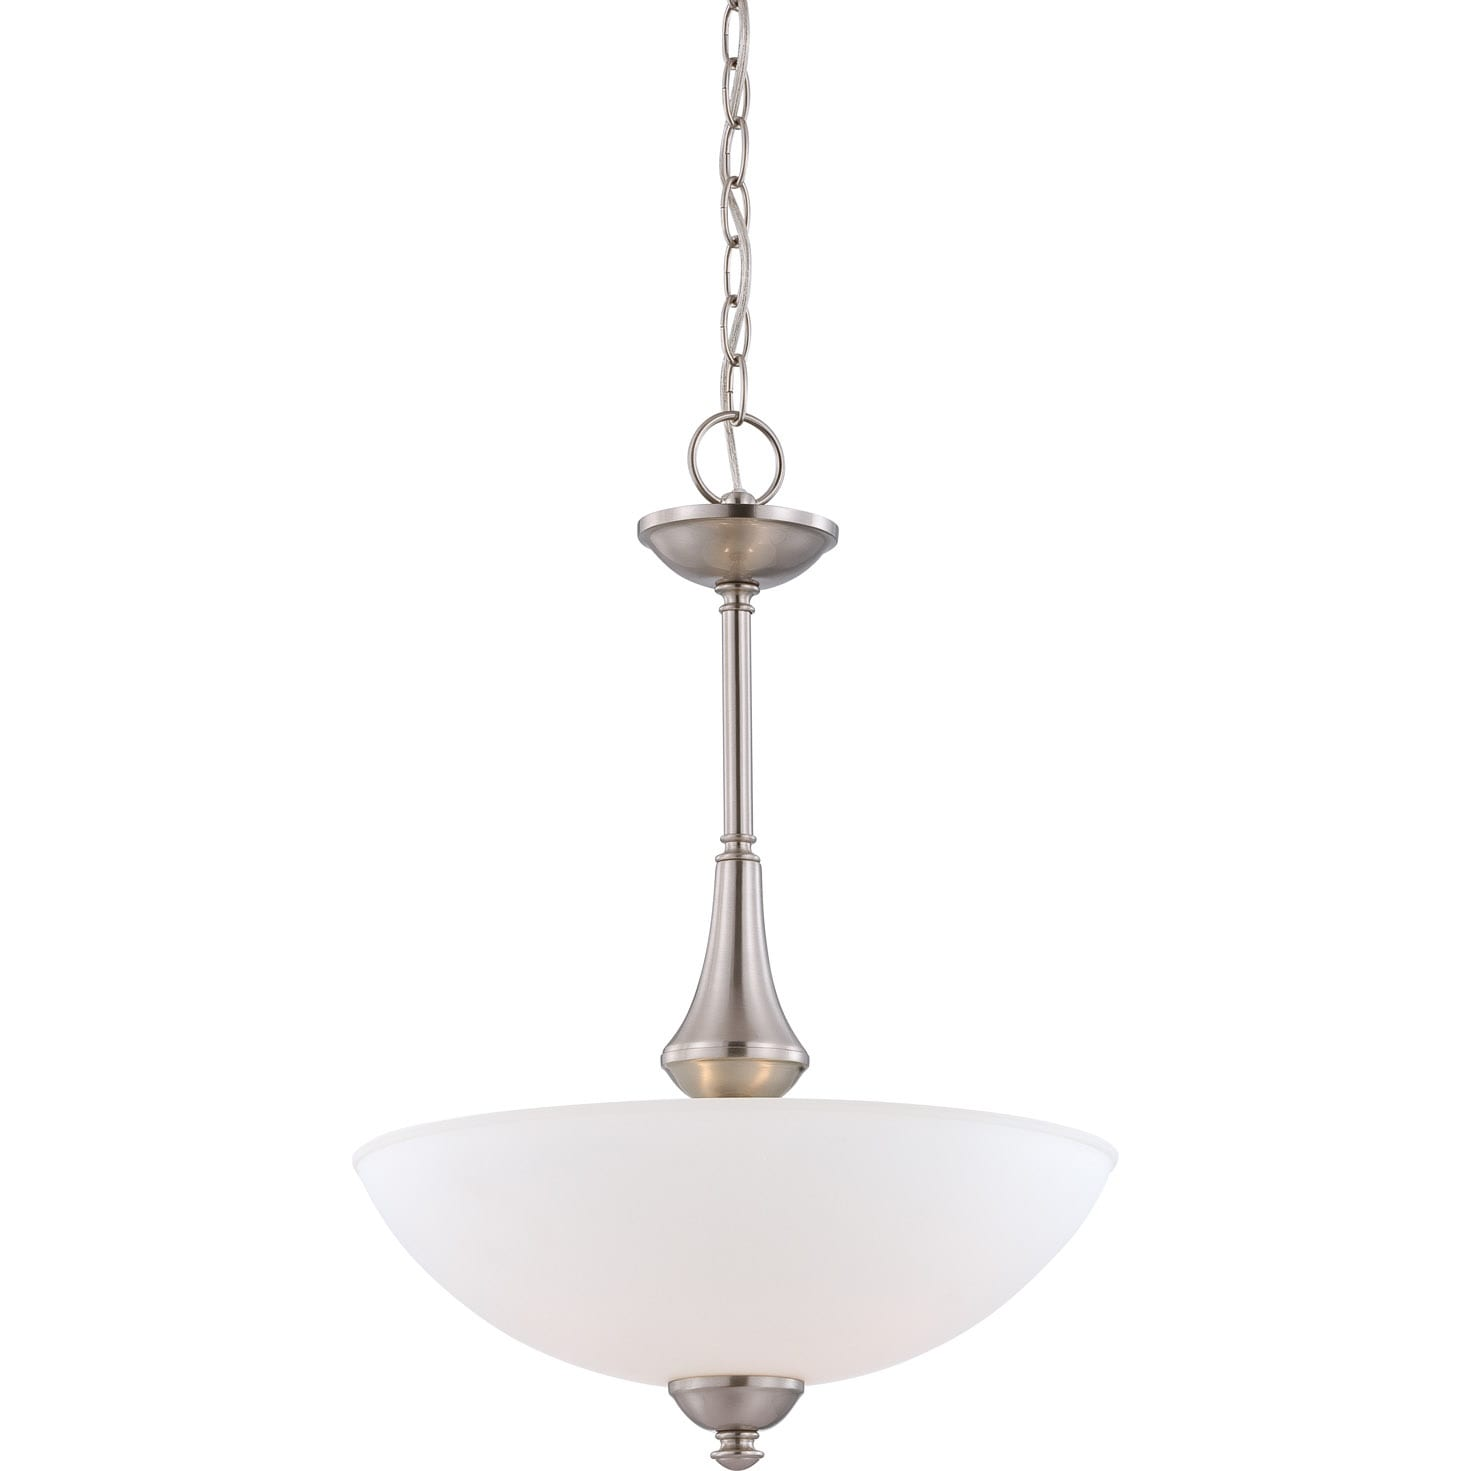 Nuvo Patton 3-light Brushed Nickel Fluorescent Pendant